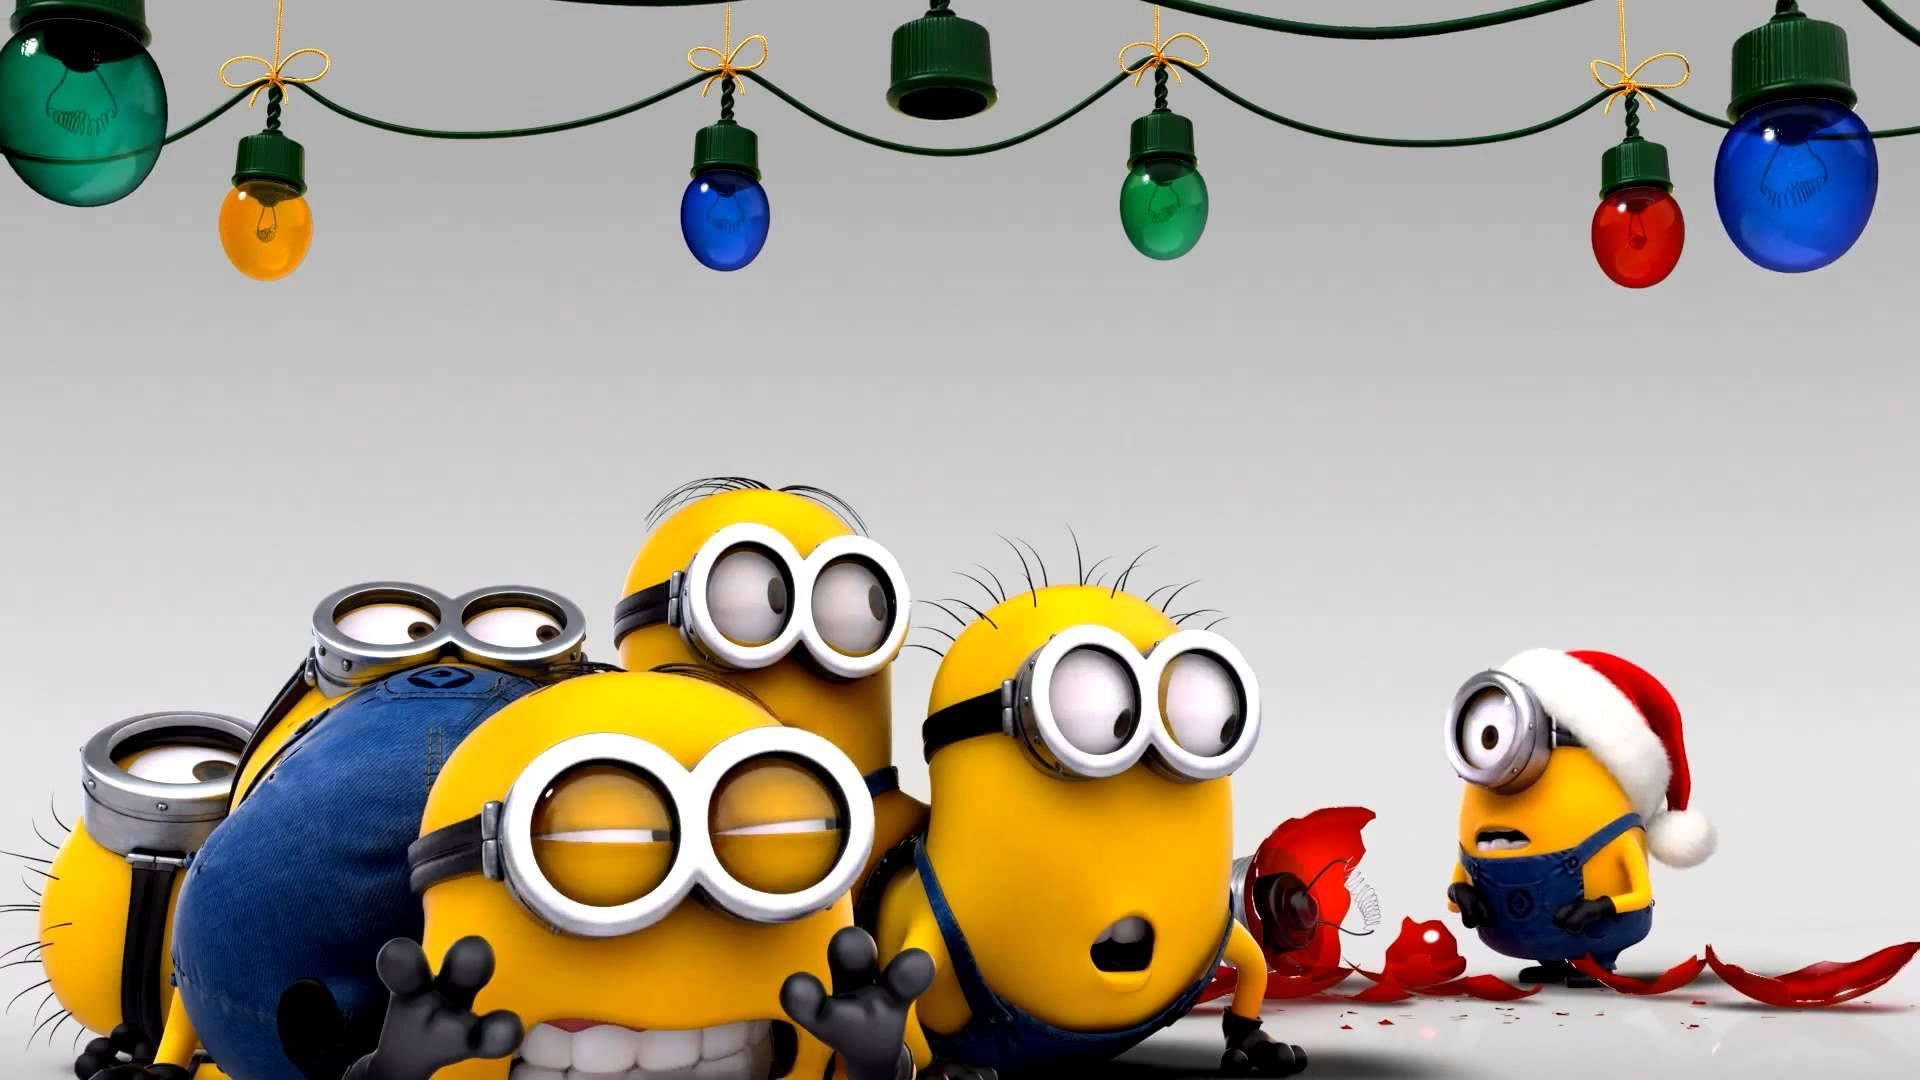 Funny Christmas Wallpapers   Top Funny Christmas Backgrounds 1920x1080